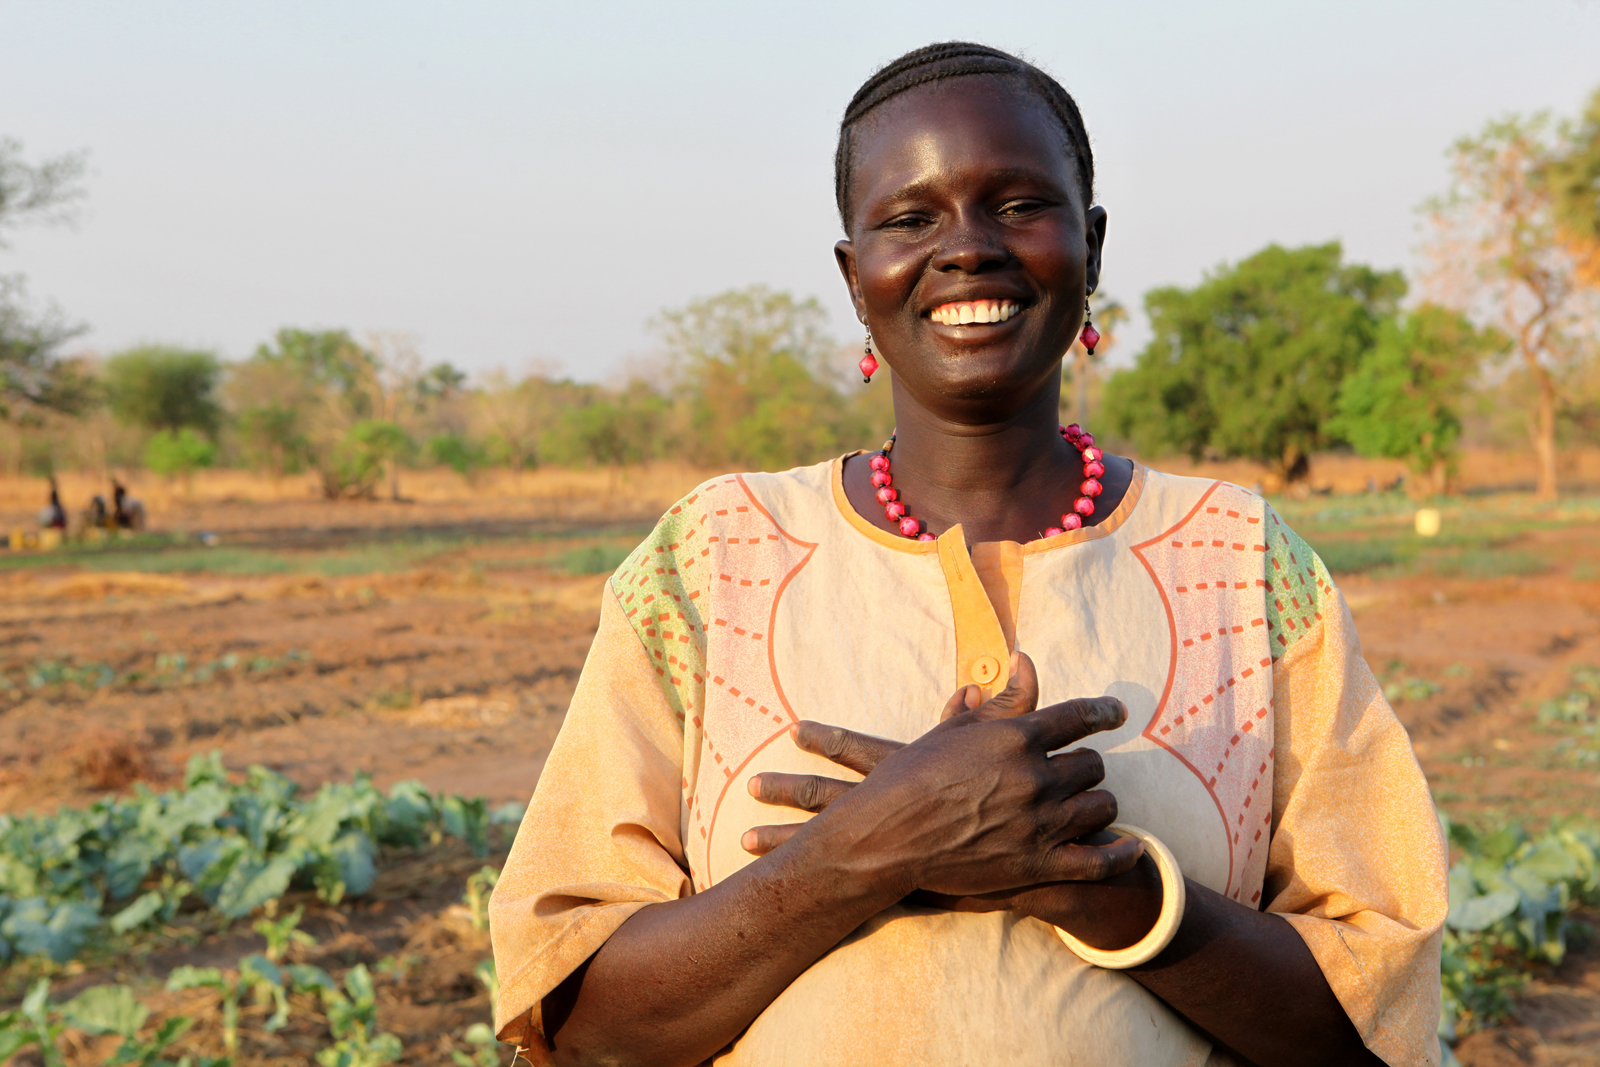 Women for Women International Sudan Chapter runs the Pacong Community Farm for women from Rumbek East, Lakes State, South Sudan. The farm supports vegetable farming, an aviary honey project, livestock and poultry. Debora Alaek Malek irrigates her crops daily from 5-7pm.